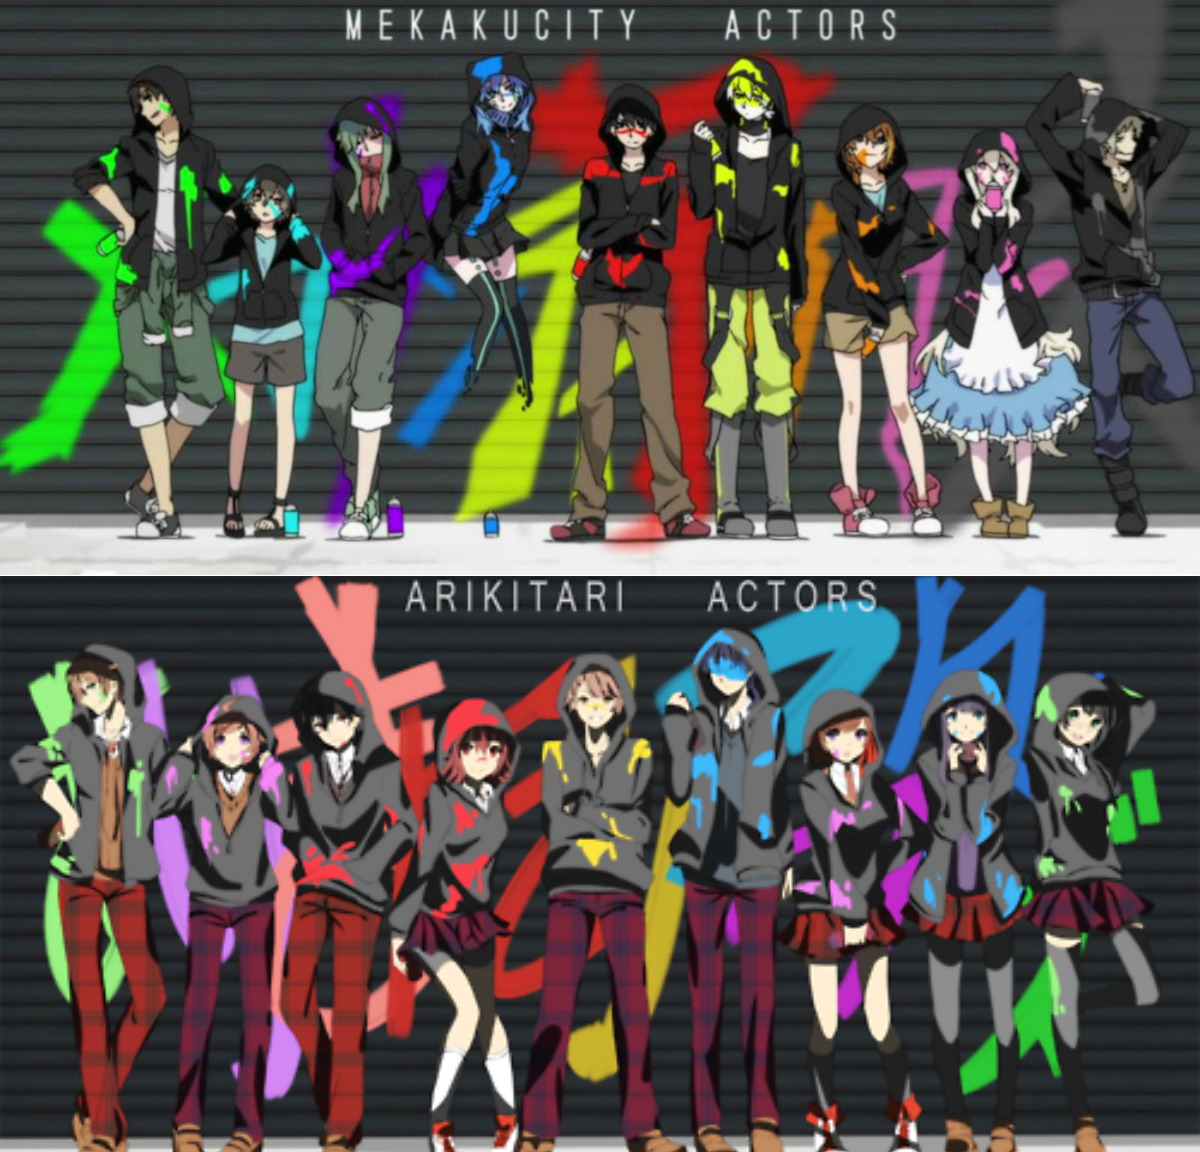 Mekakucity Actors x Arikitari Actors